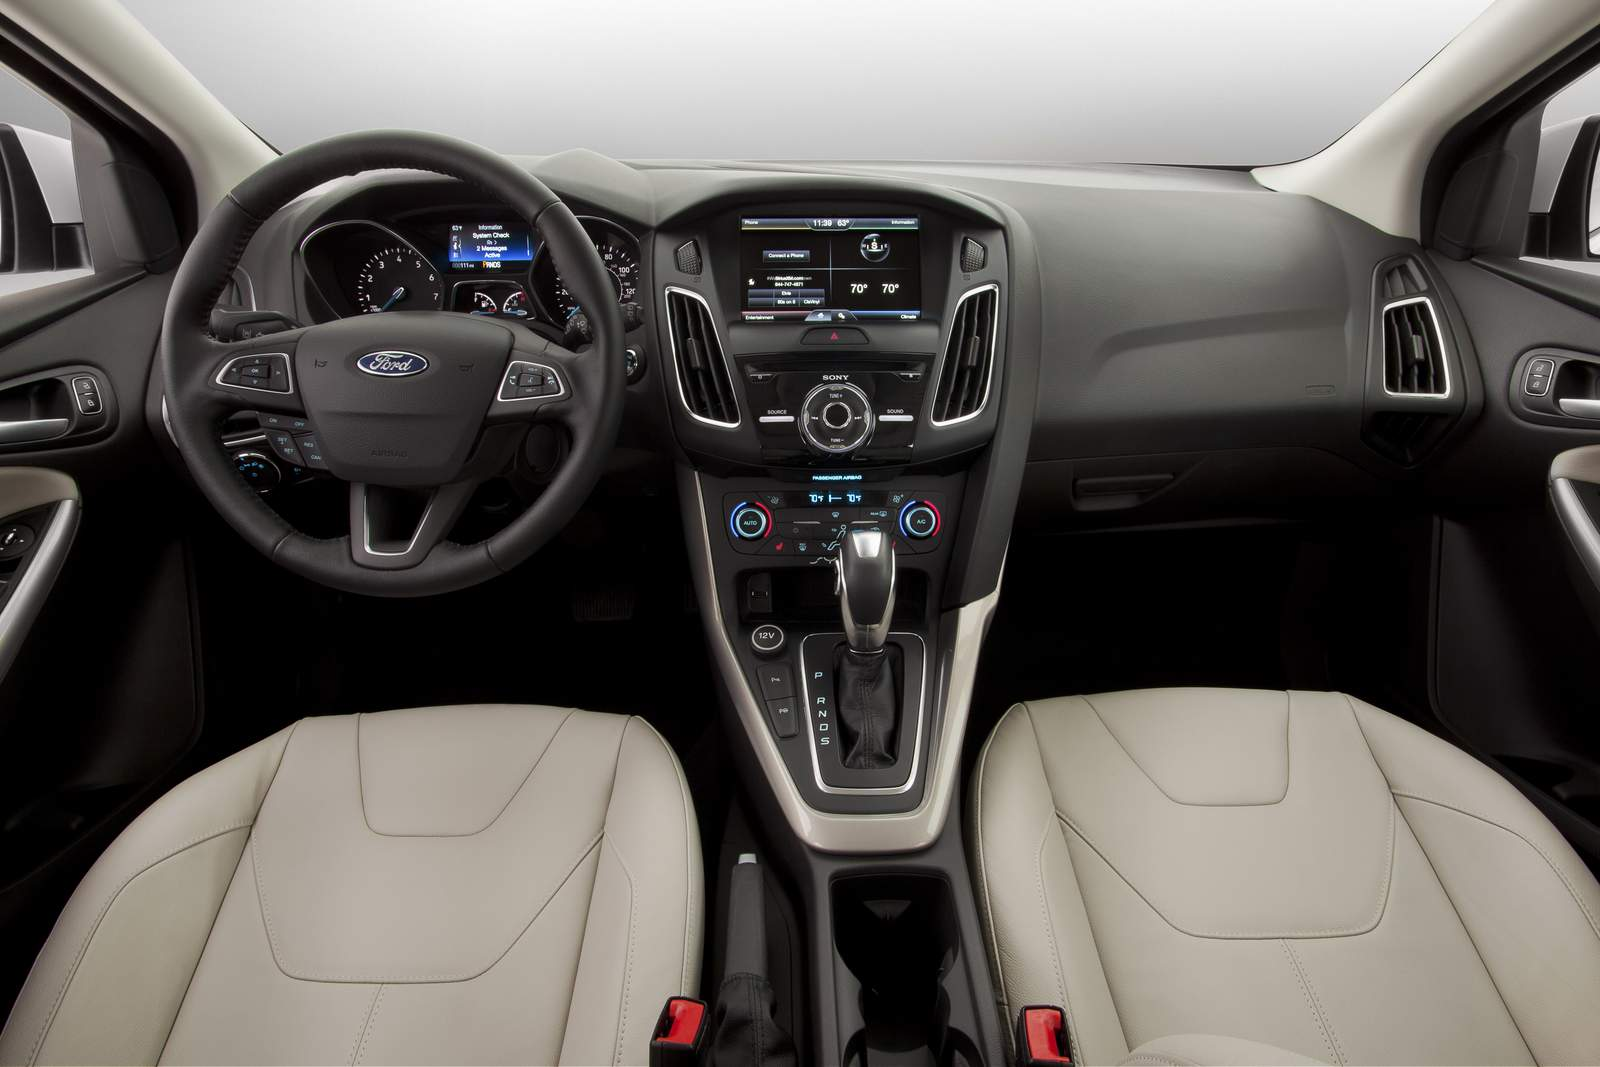 Novo Focus Sedan 2015 - interior